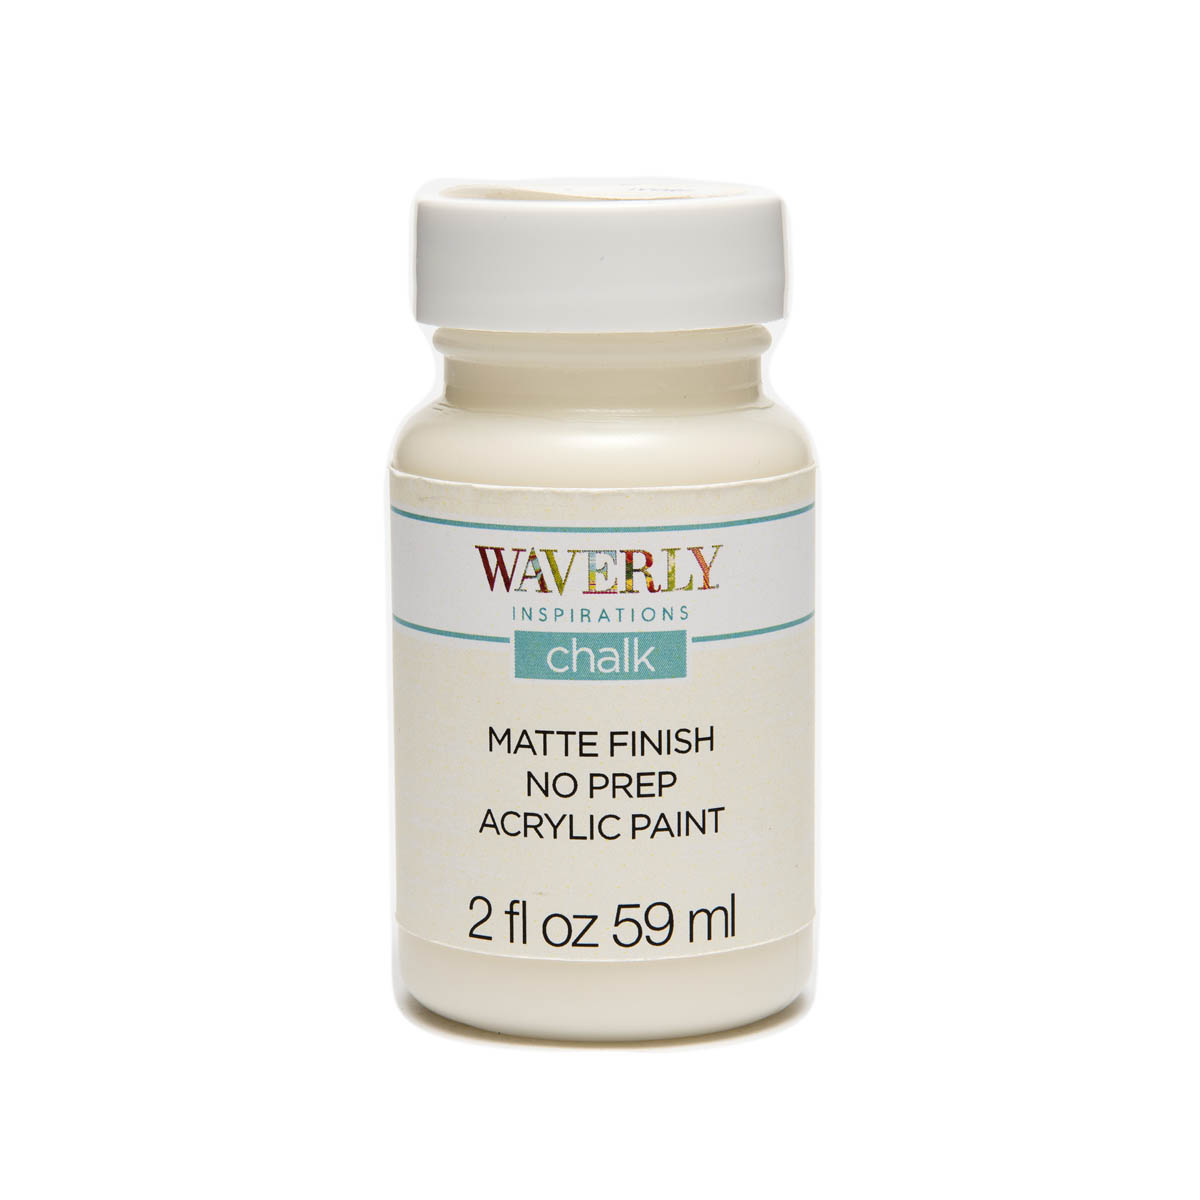 Waverly ® Inspirations Chalk Finish Acrylic Paint - Ivory, 2 oz. - 60738E